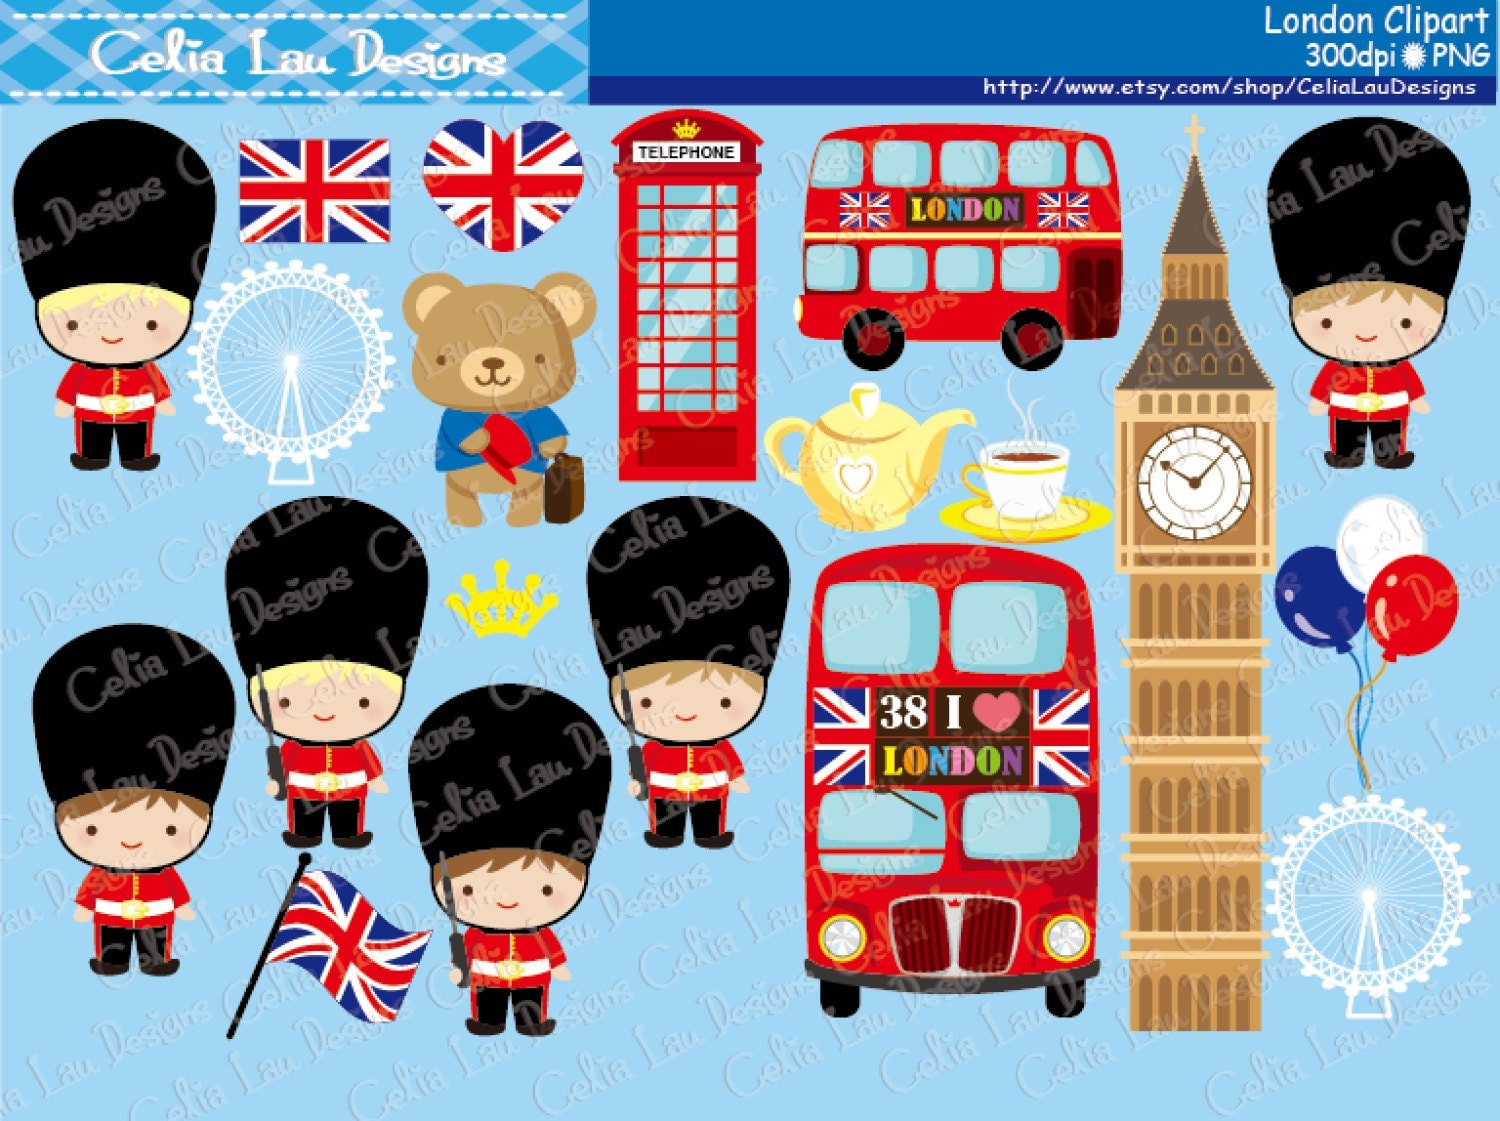 Scrapbook paper england theme - London Clipart London England British Clip Art Great Britian United Kingdom Clipart Cg128 Instant Download